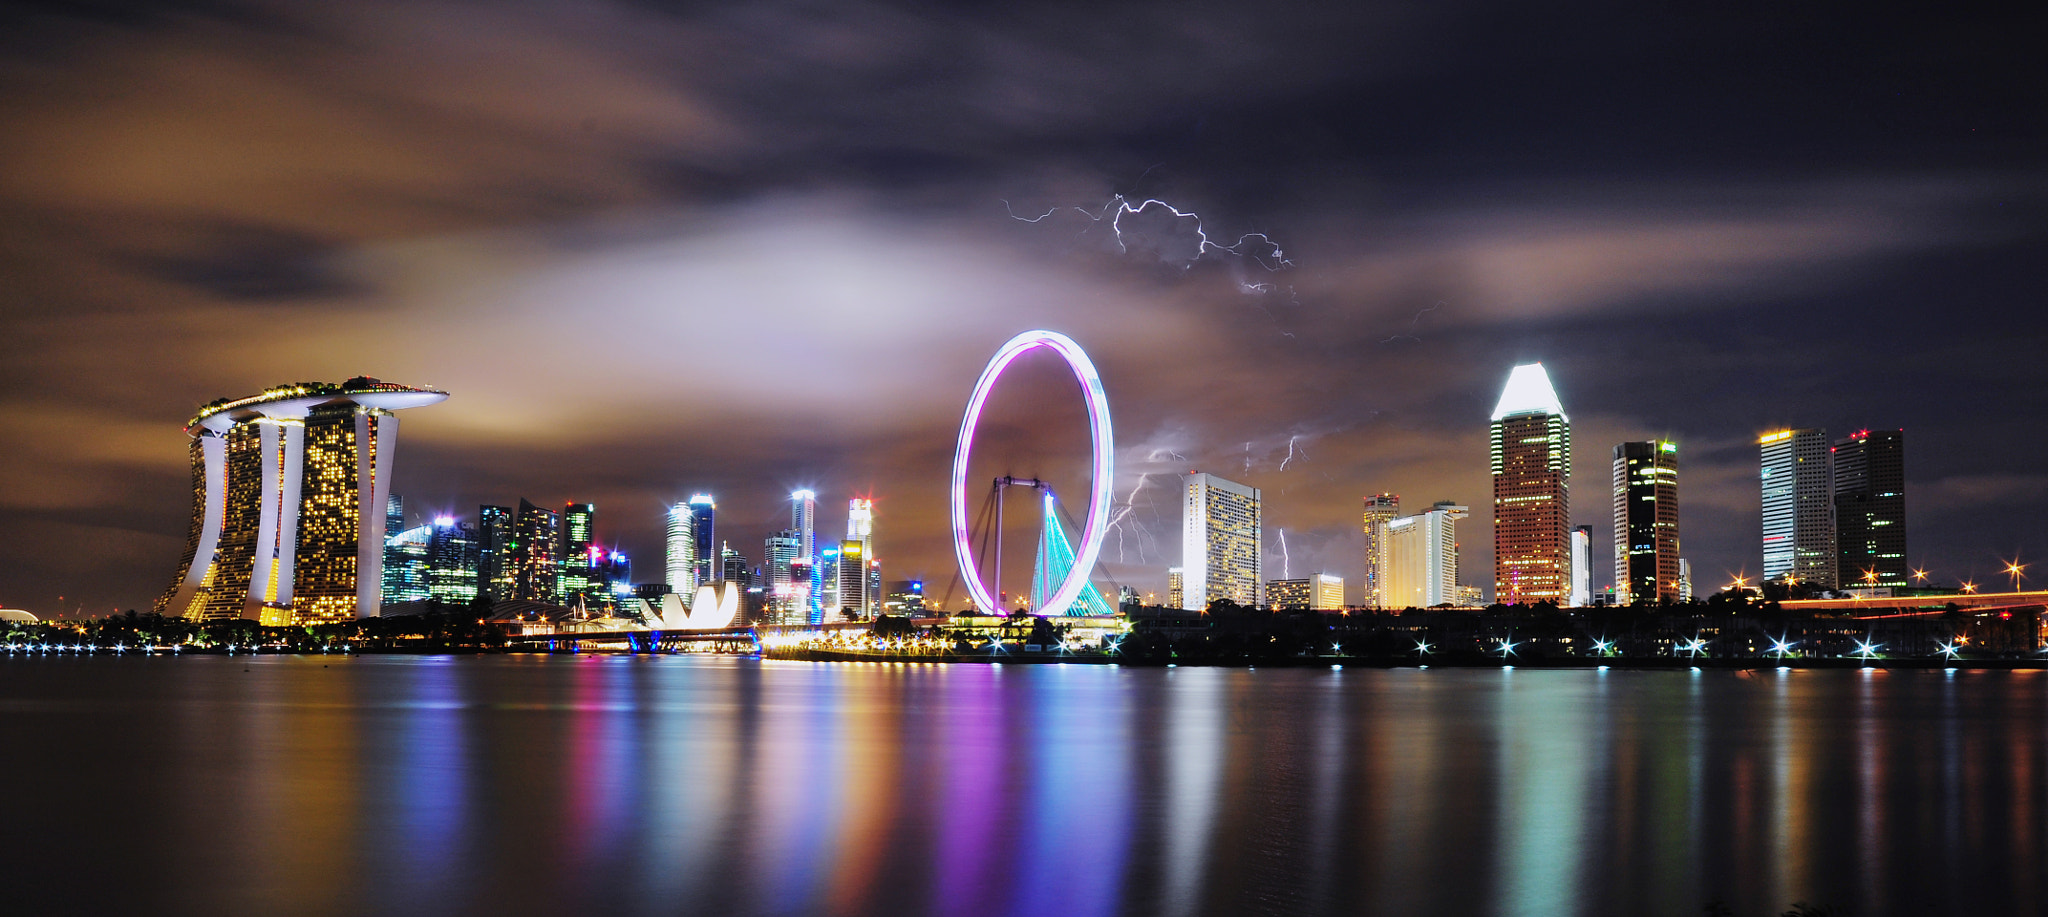 Photograph Lightning by Ren Hui Yoong on 500px